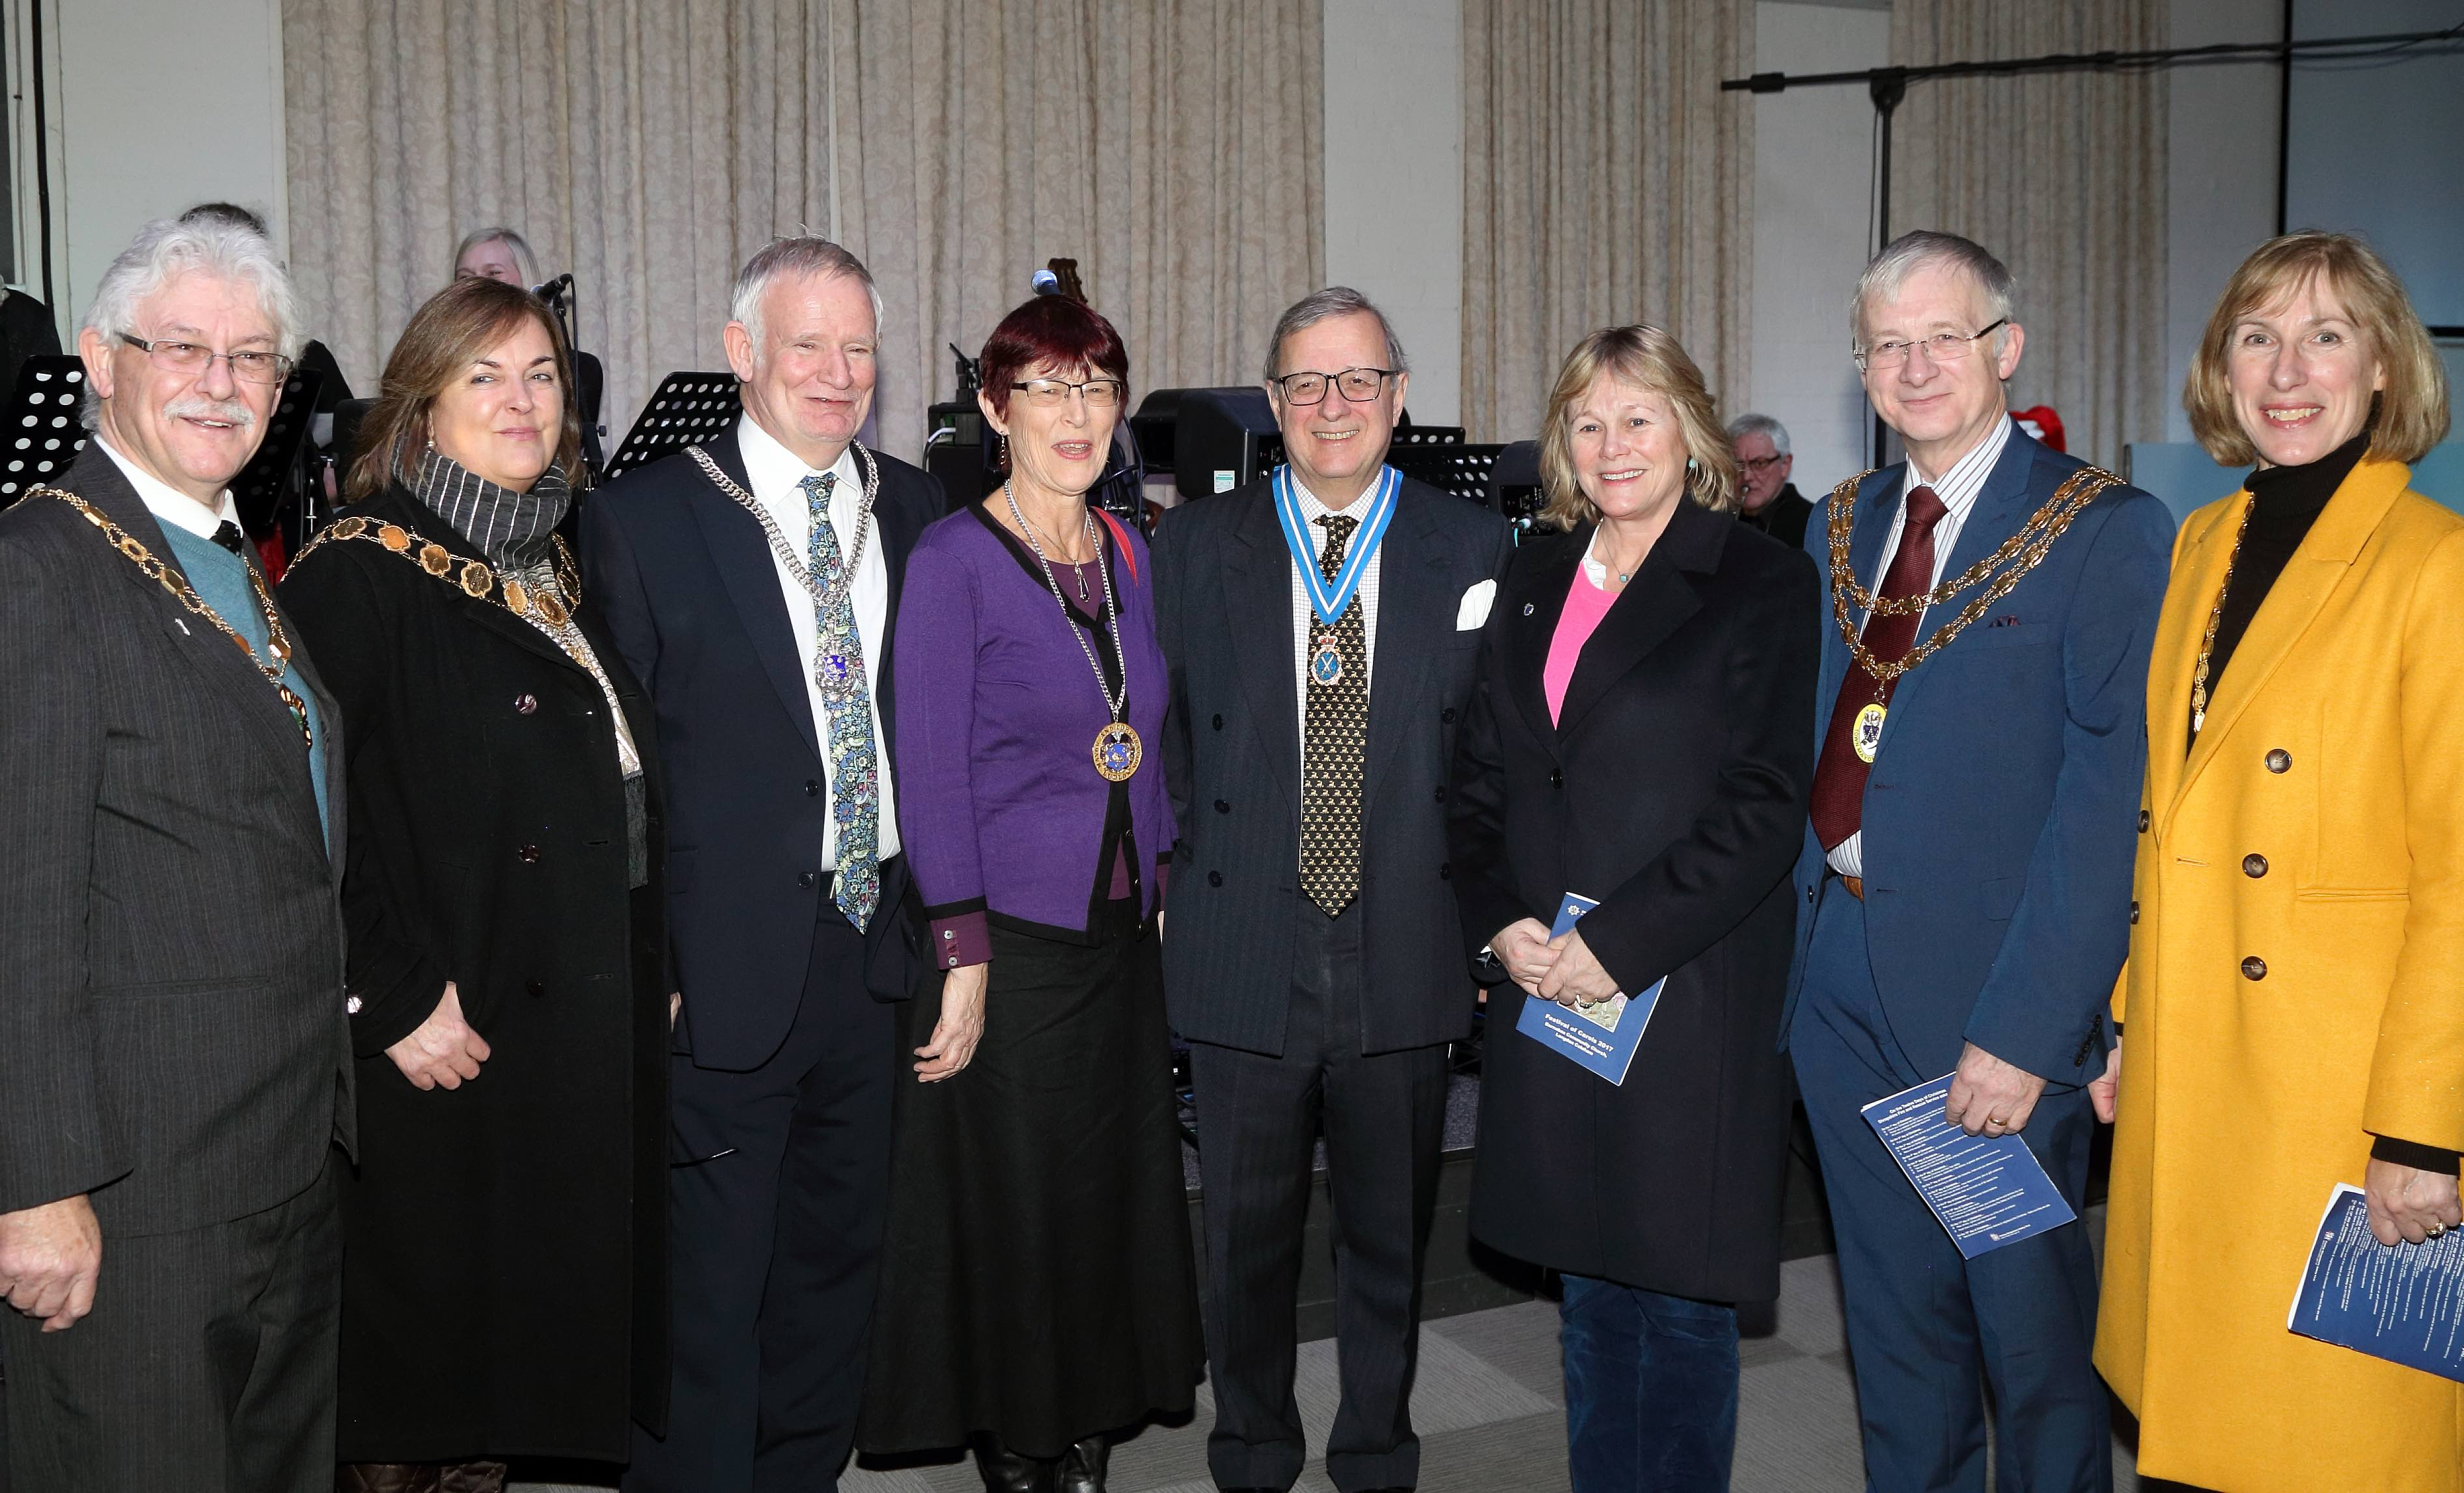 Dignitaries including the High Sheriff attended Shropshire Fire and Rescue Service's Festival of Carols